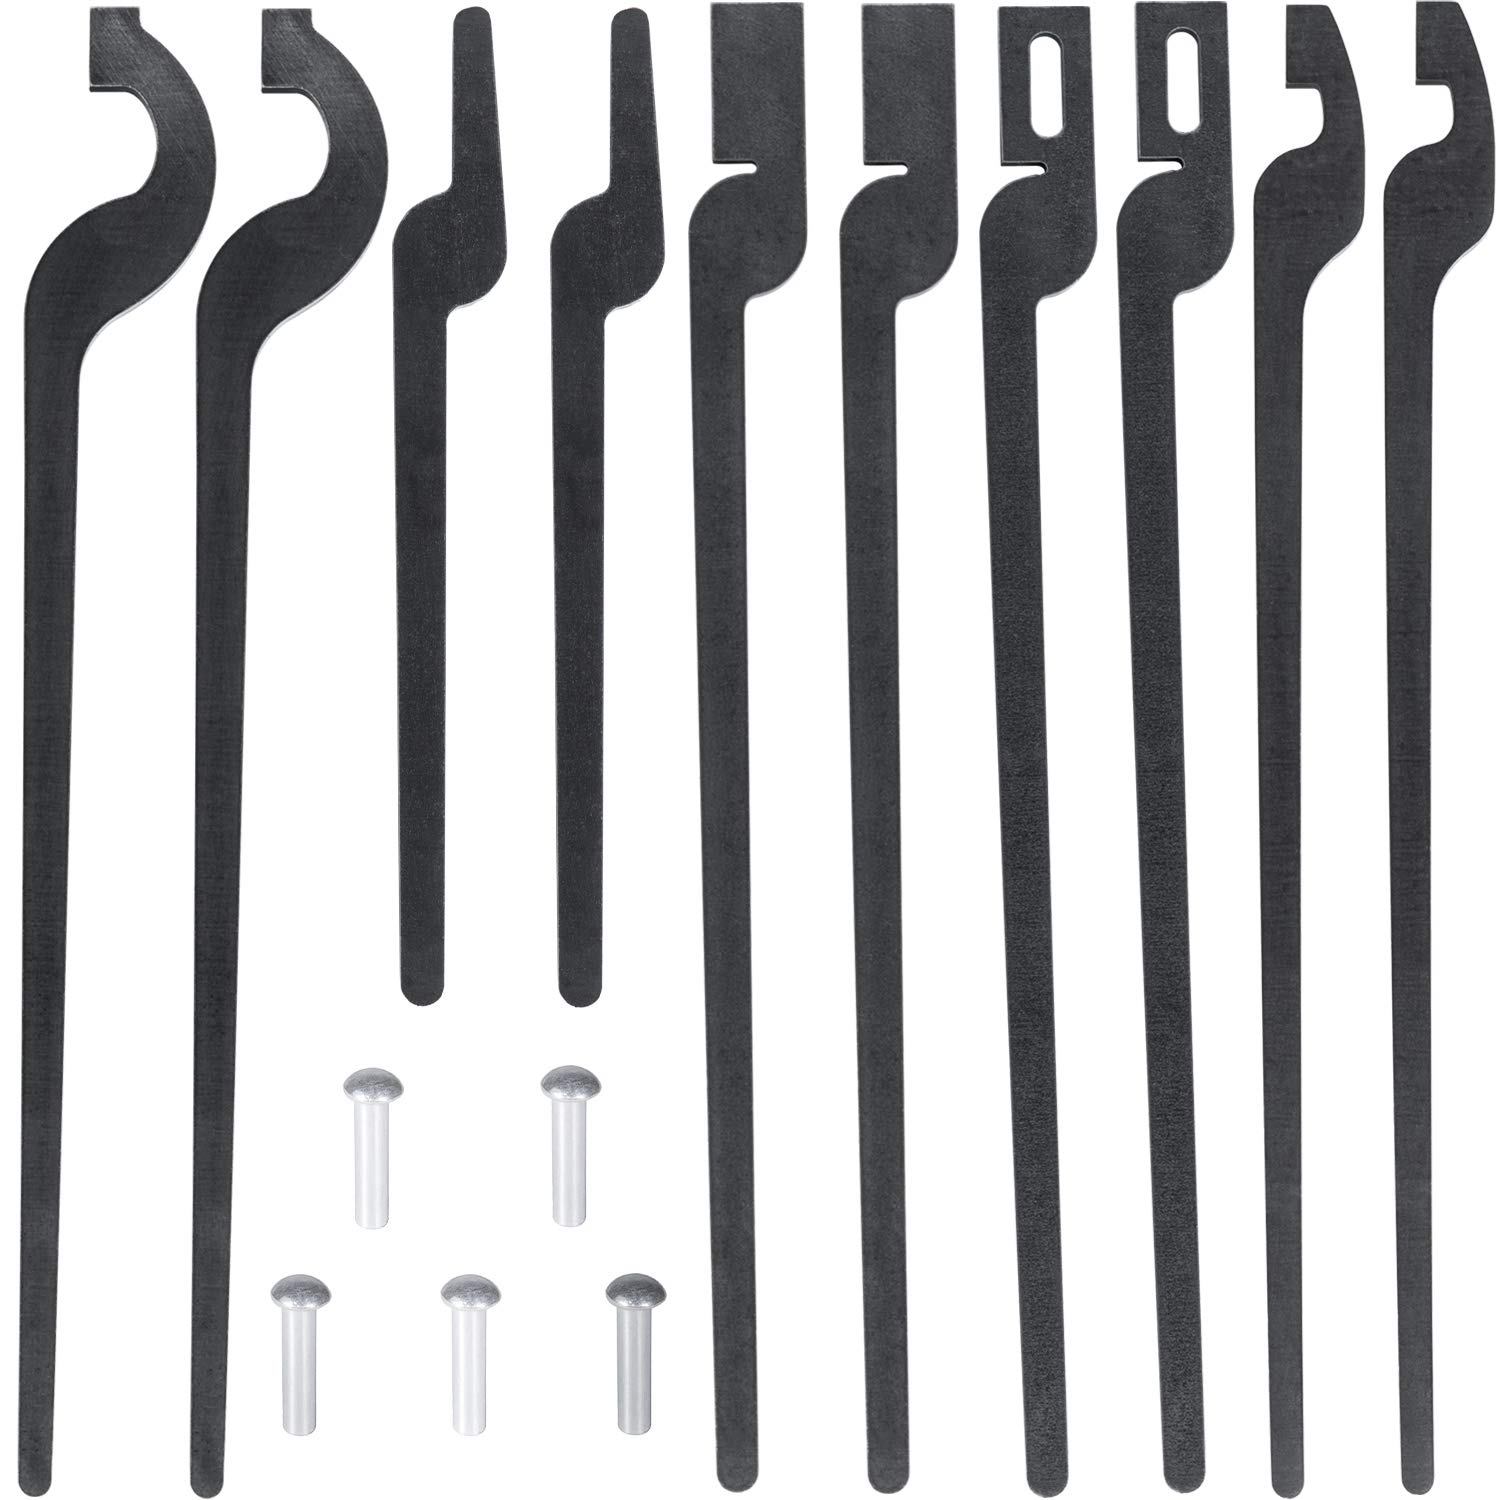 E-cowlboy Five types of Tongs Bundle Set with Rivet Rapid Bolt,Flat Jaw, Slot Jaw, V-Bit &Scroll Tongs Blacksmith by E-cowlboy